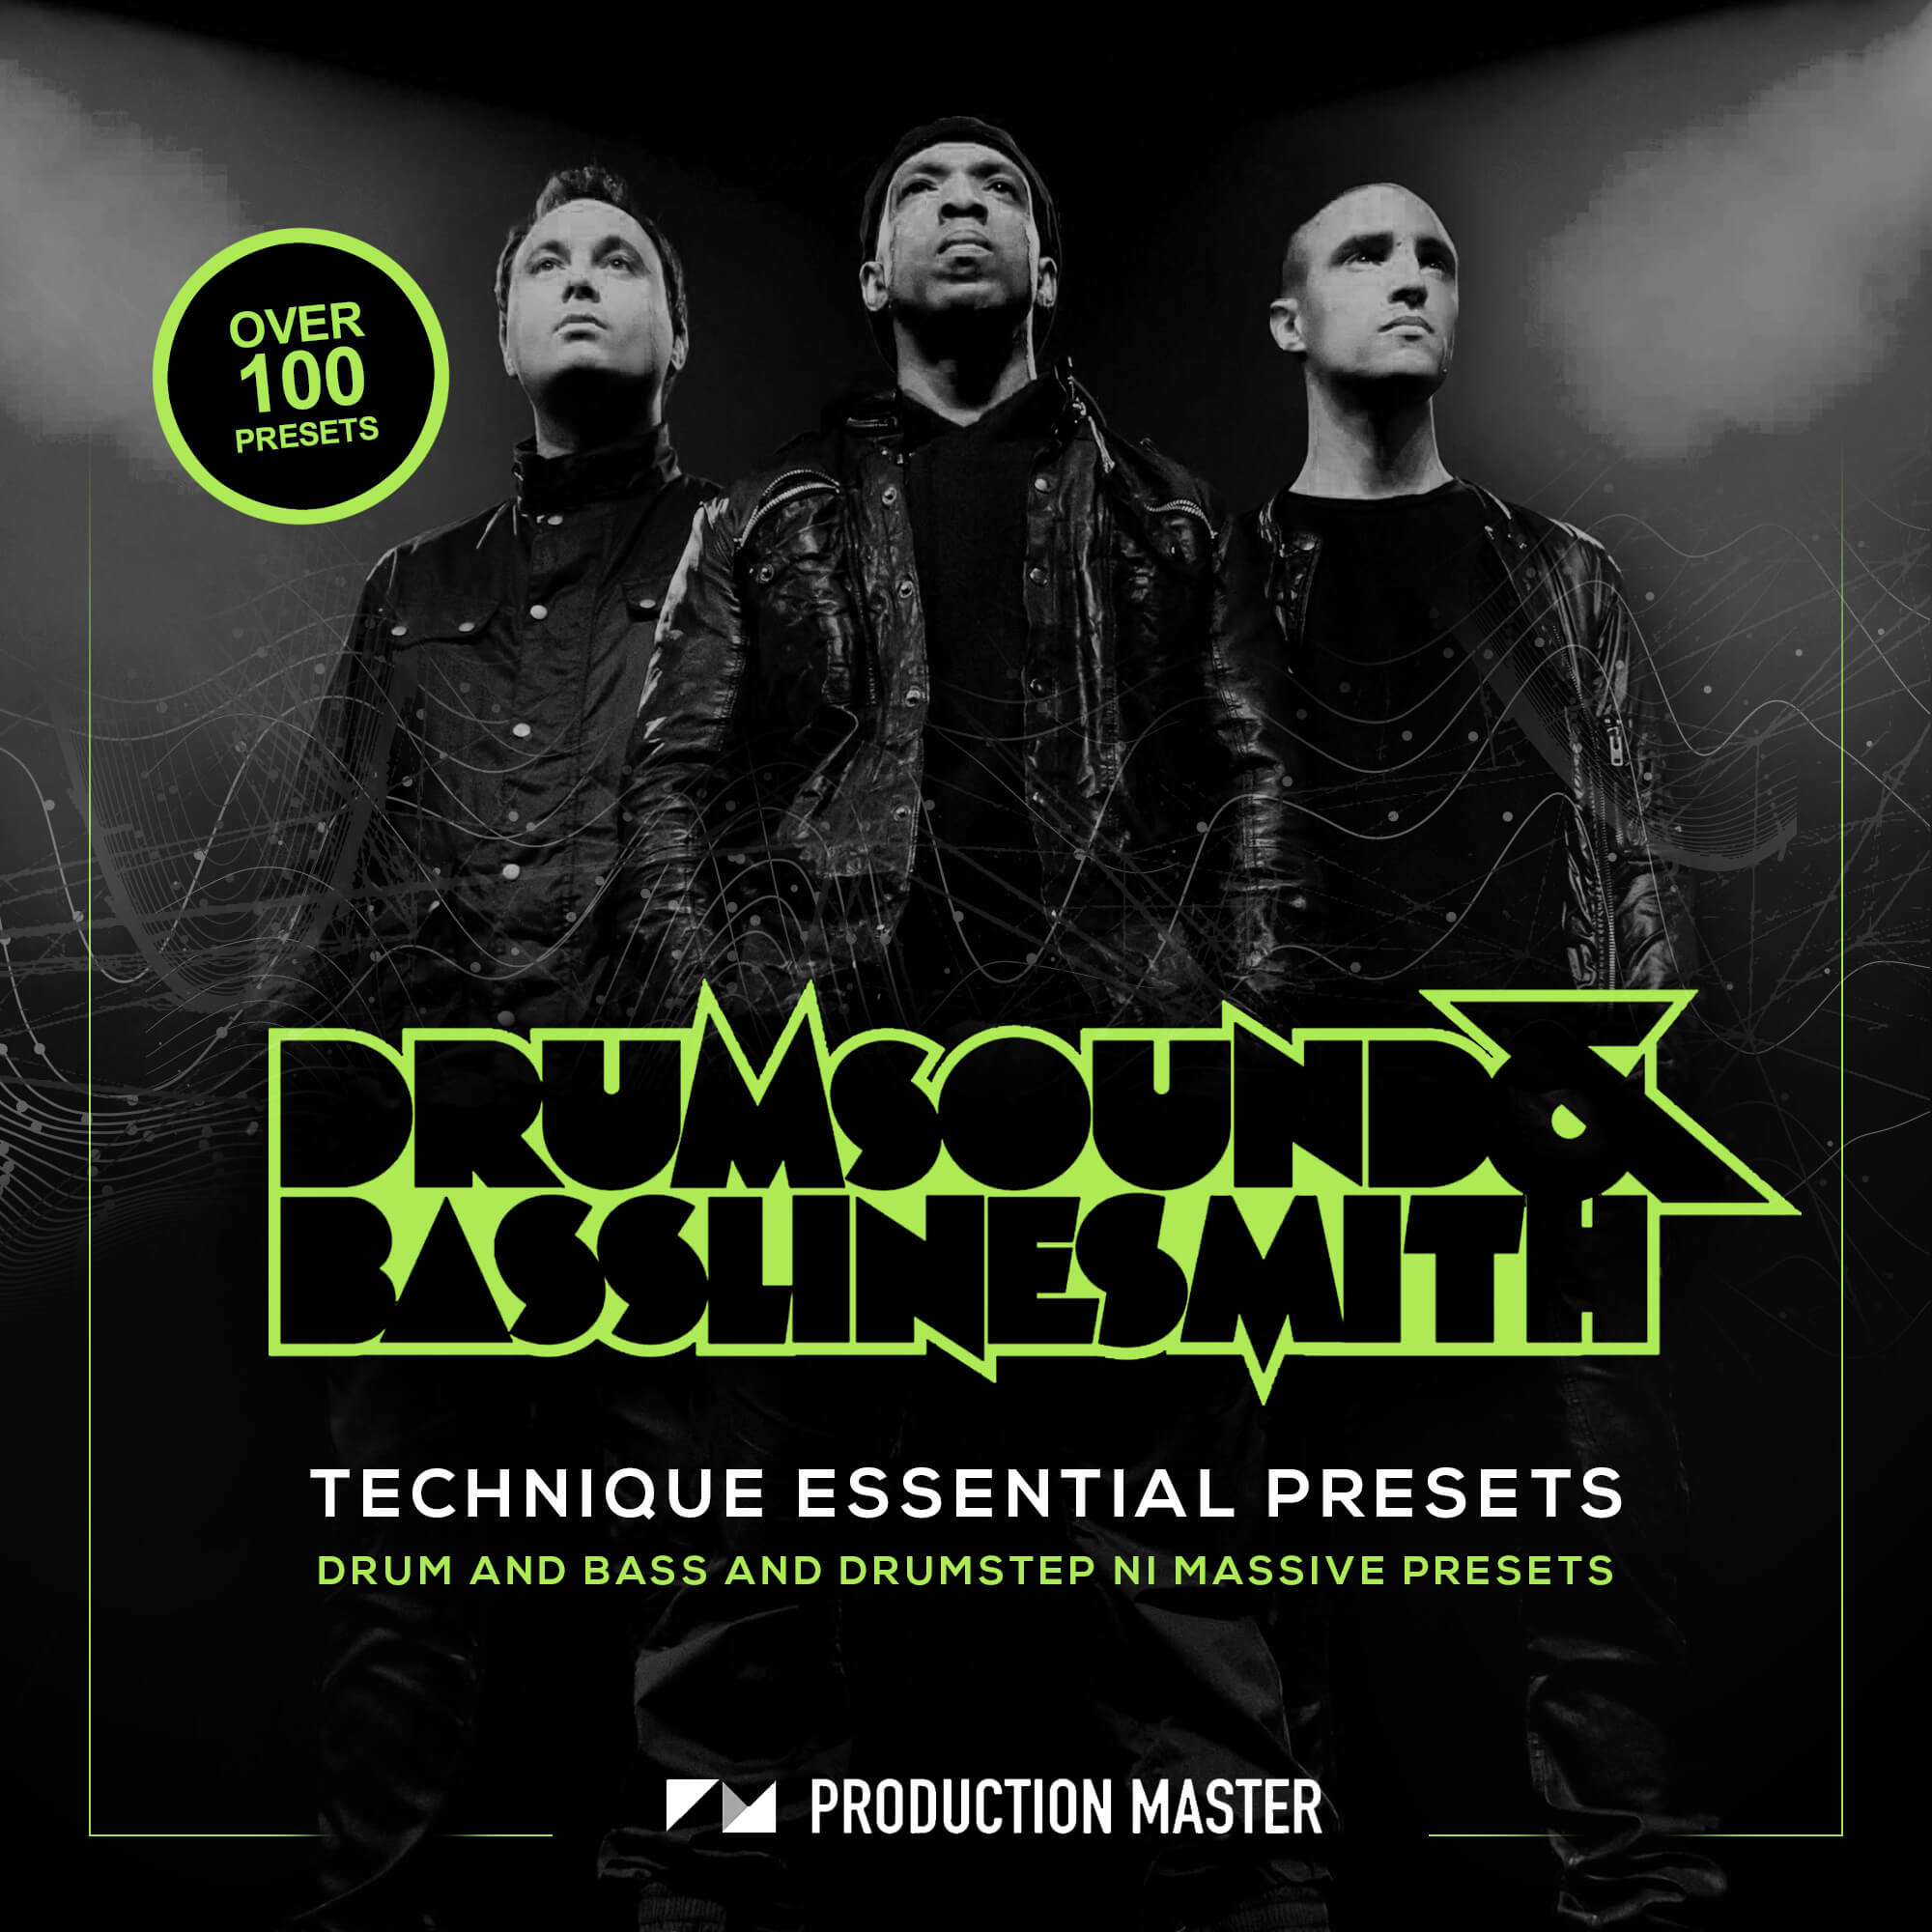 Drumsound and Bassline Smith Technique Essential Presets